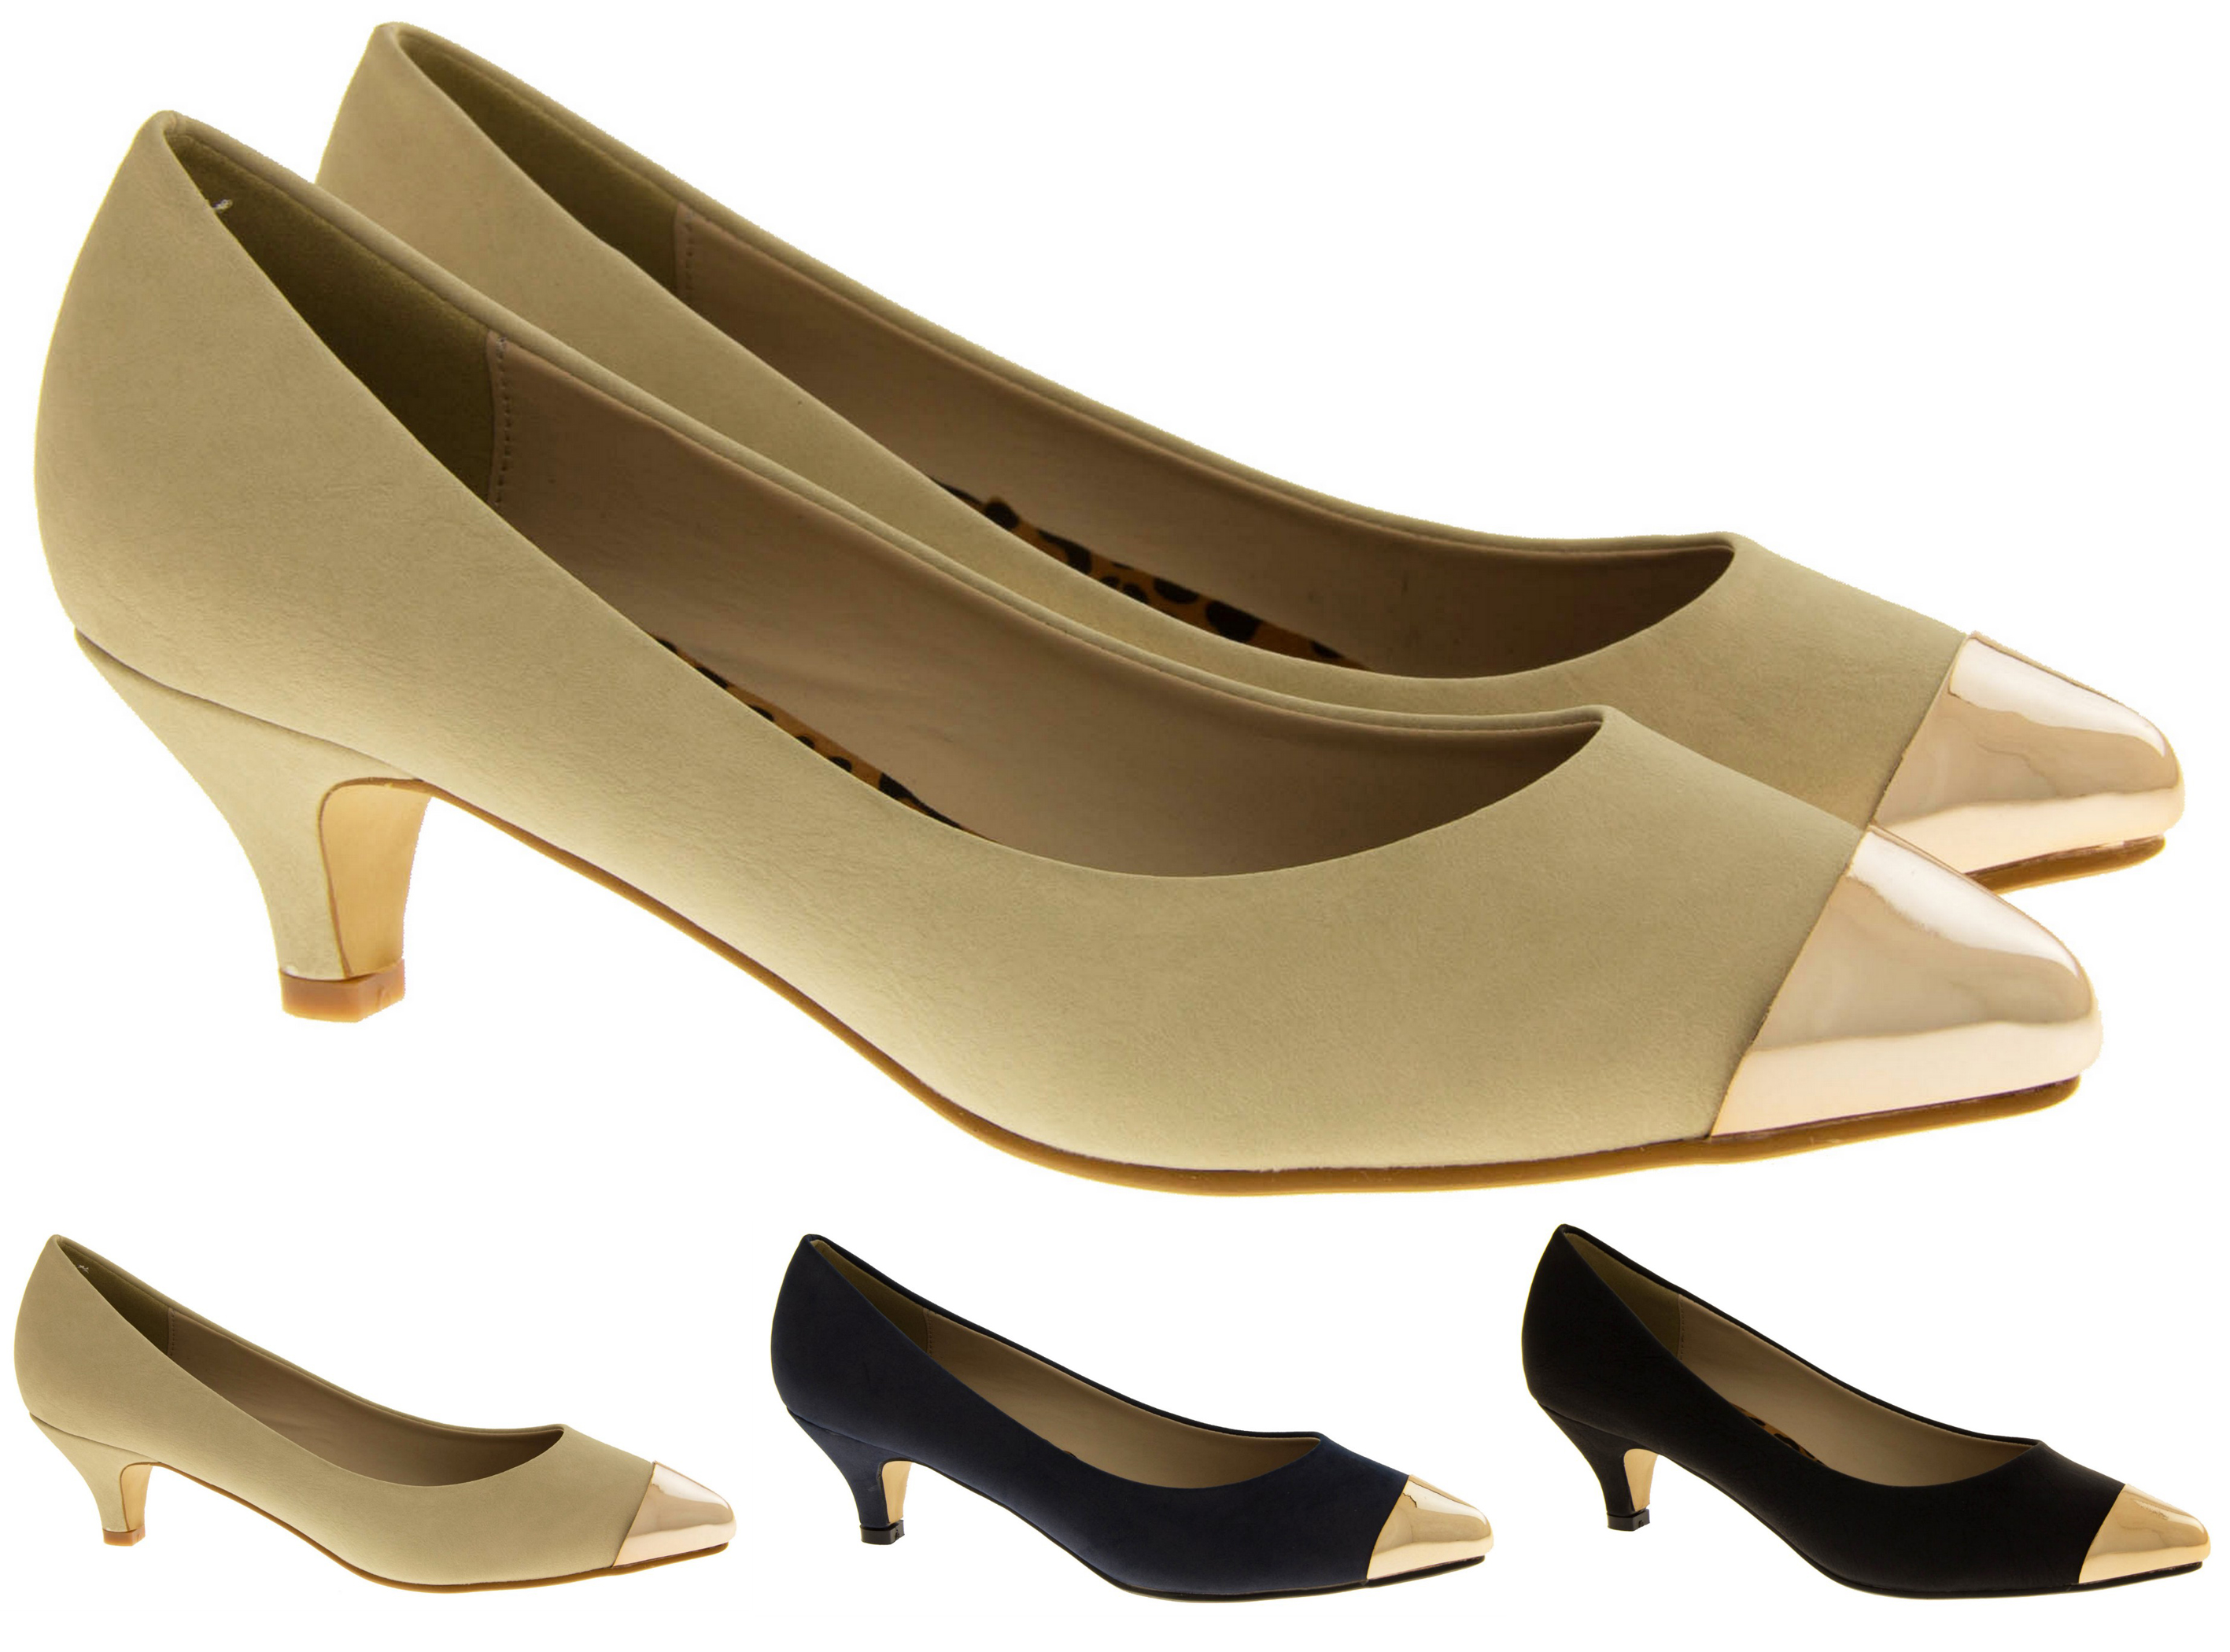 Ladies Stylish Fashion Low Mid Heels Womens Work Court Shoes <span style='visibility:hidden;'> Size 3 4 5 6 7 8